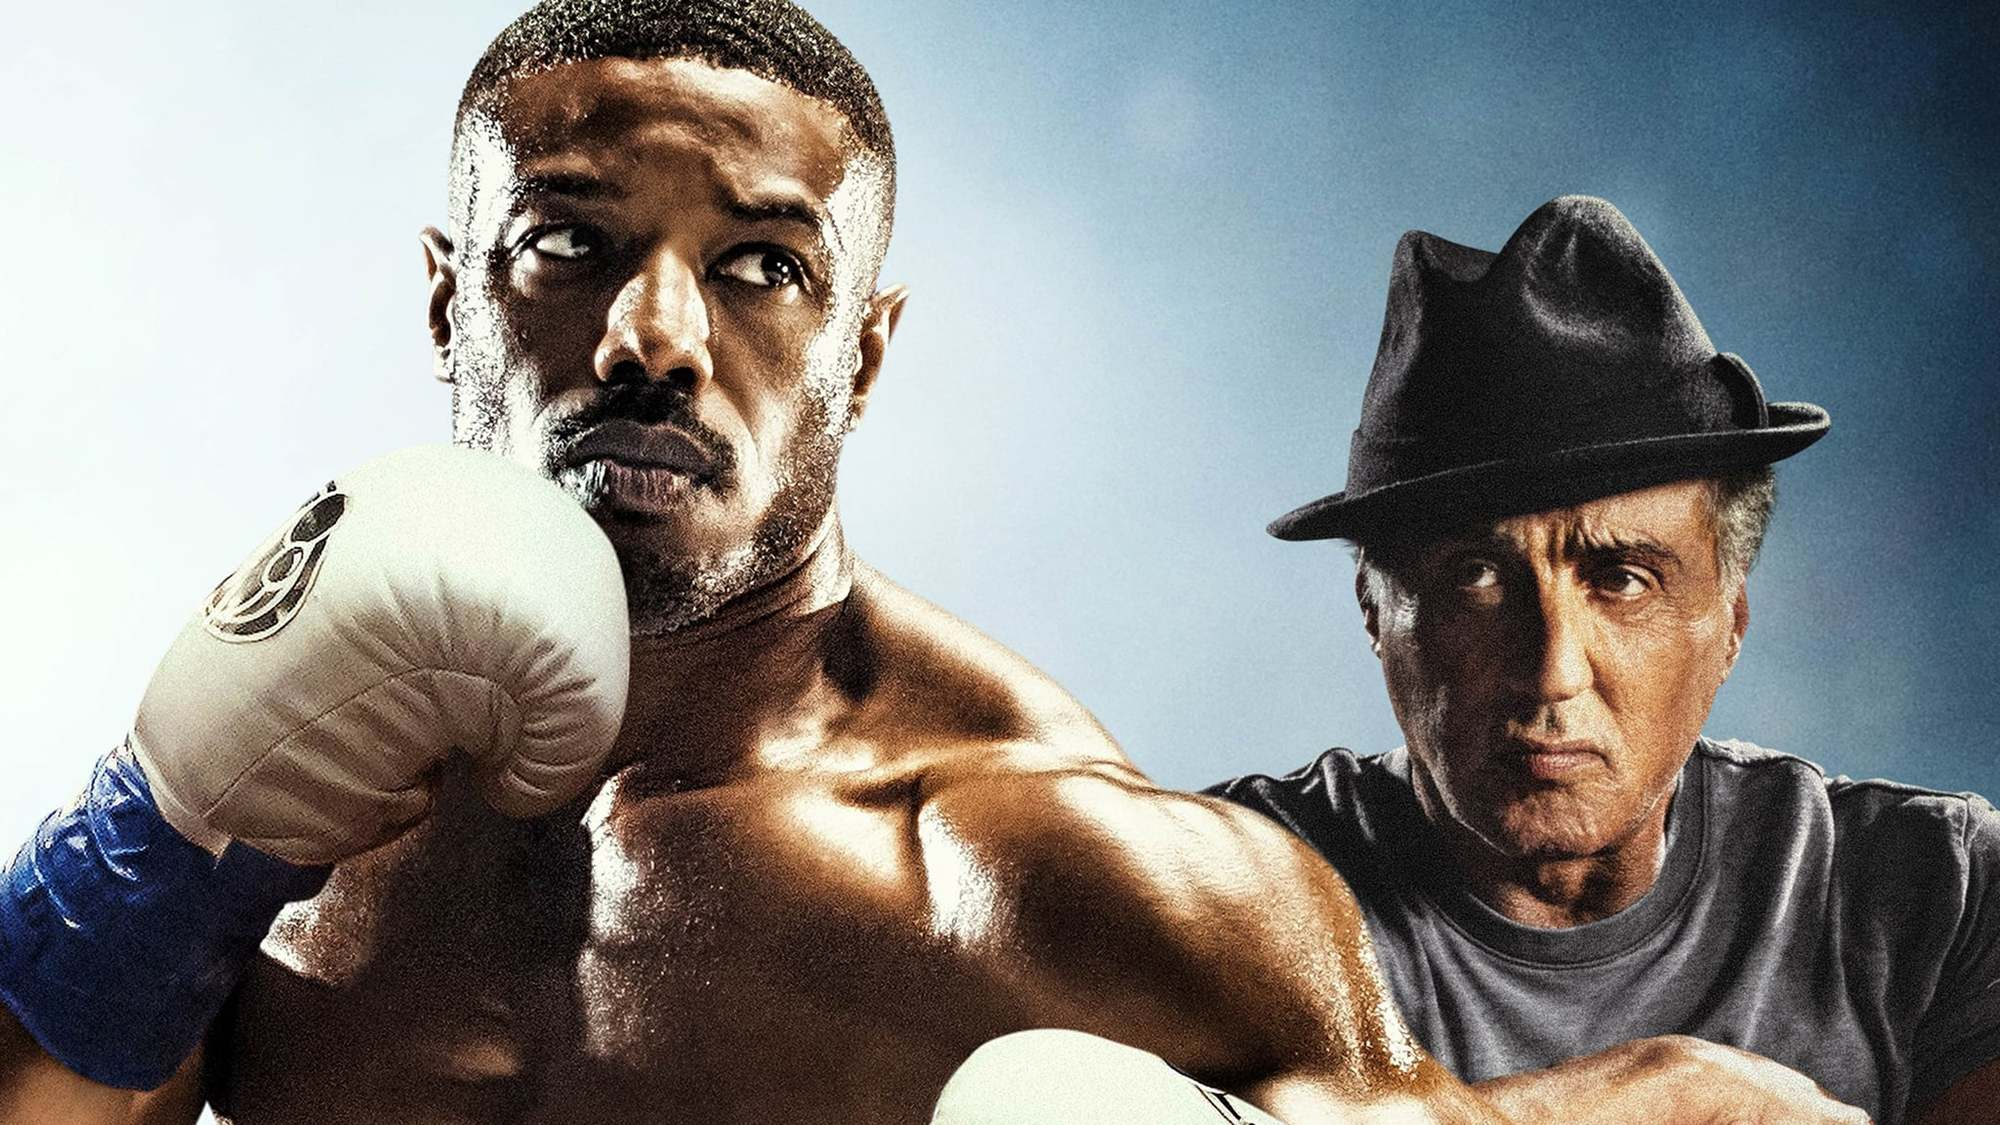 Image: Creed II/TMDb